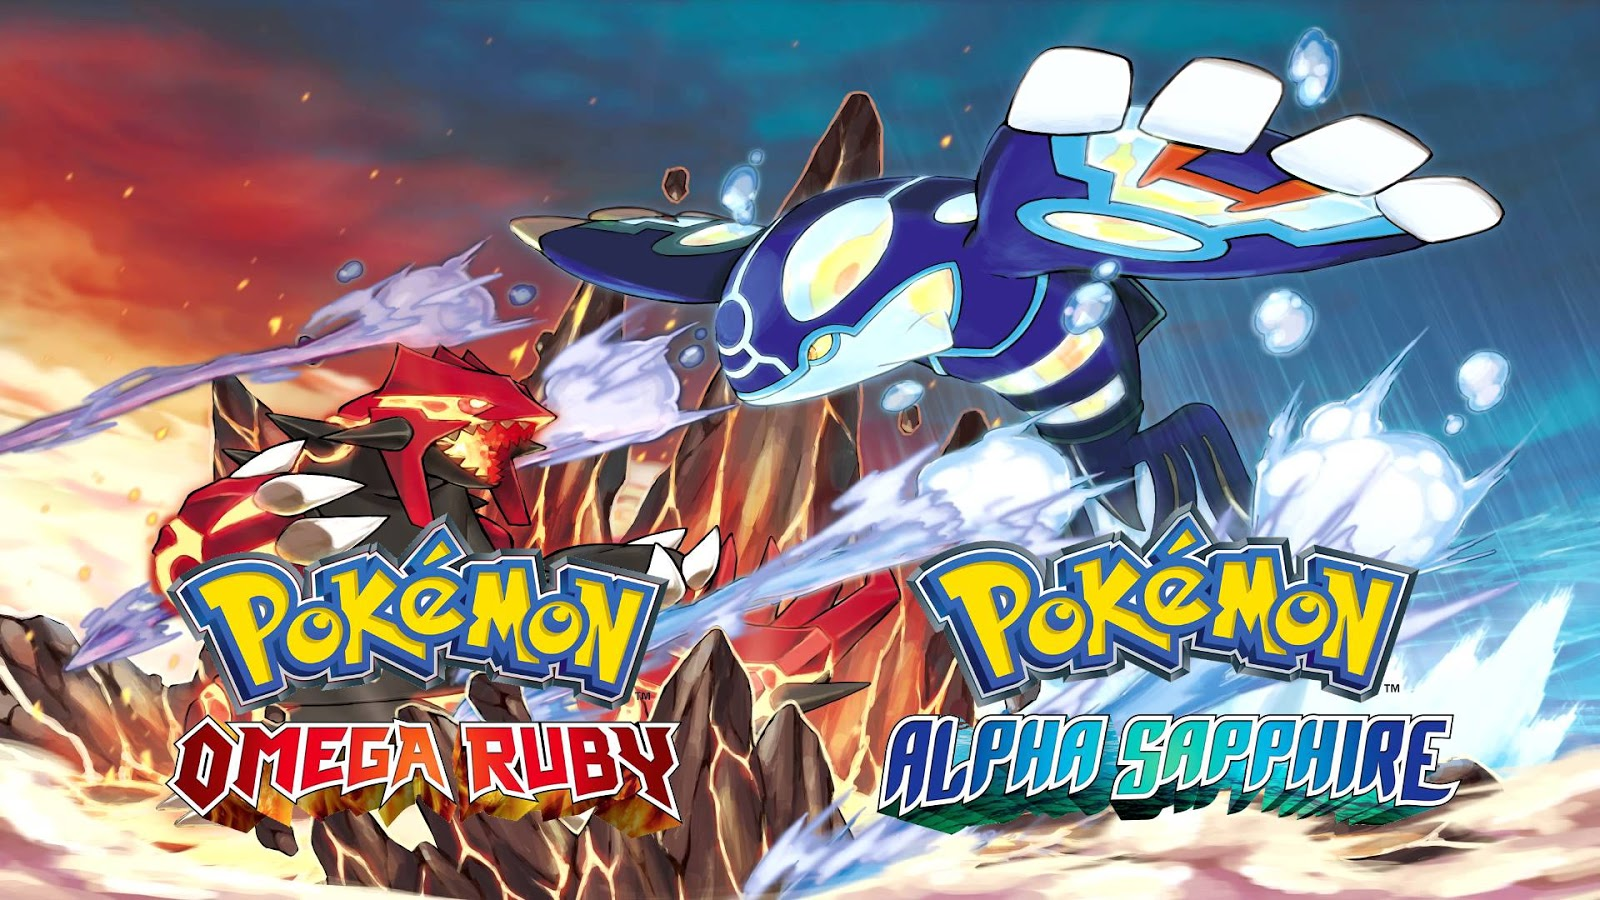 How To POKEMON OMEGA RUBY/ALPHA SAPPHIRE IN PC CITRA EMULATOR